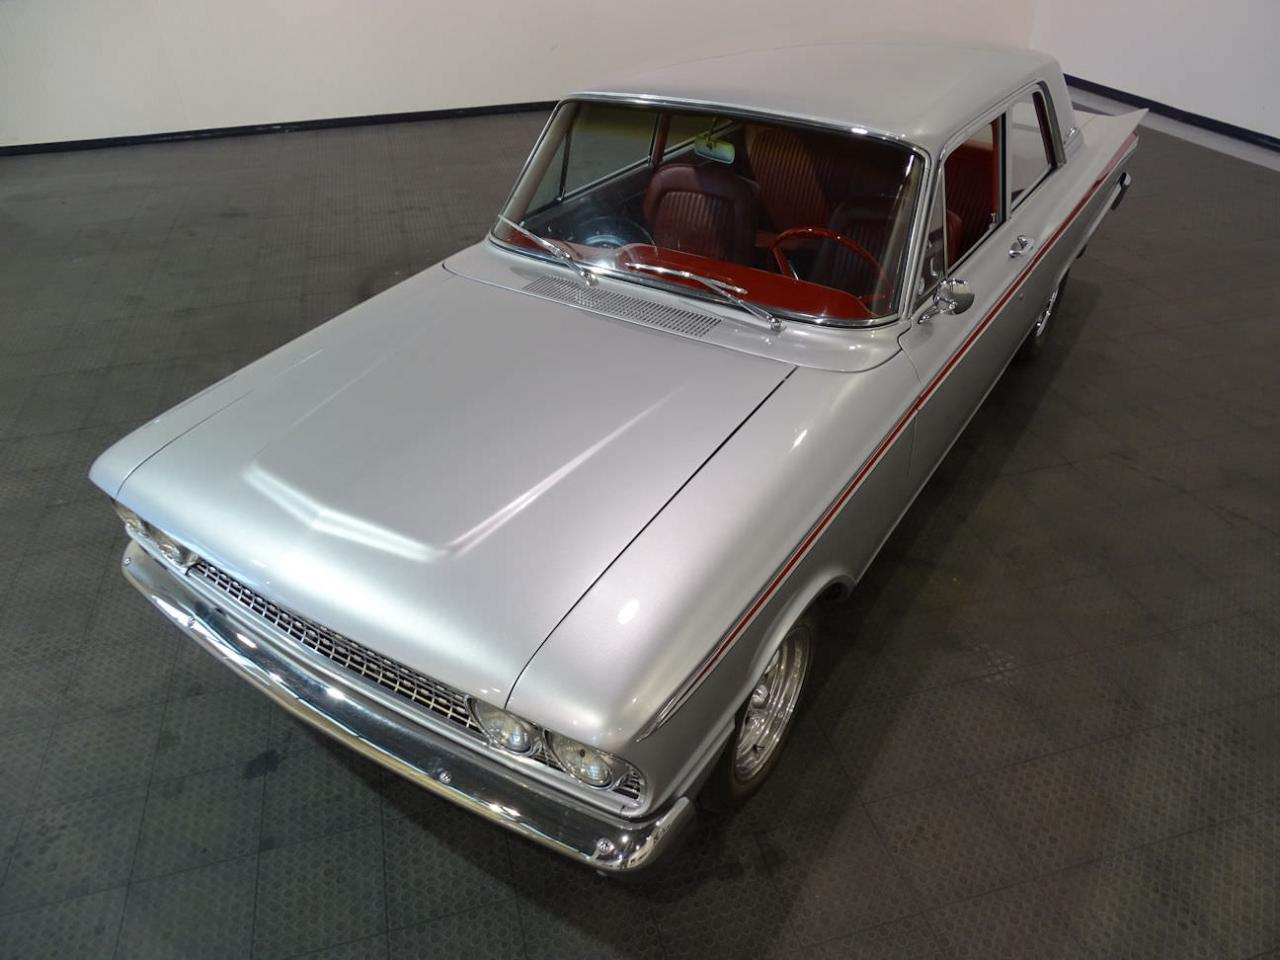 Large Picture of Classic 1963 Ford Fairlane located in Indiana Offered by Gateway Classic Cars - Indianapolis - LRV1